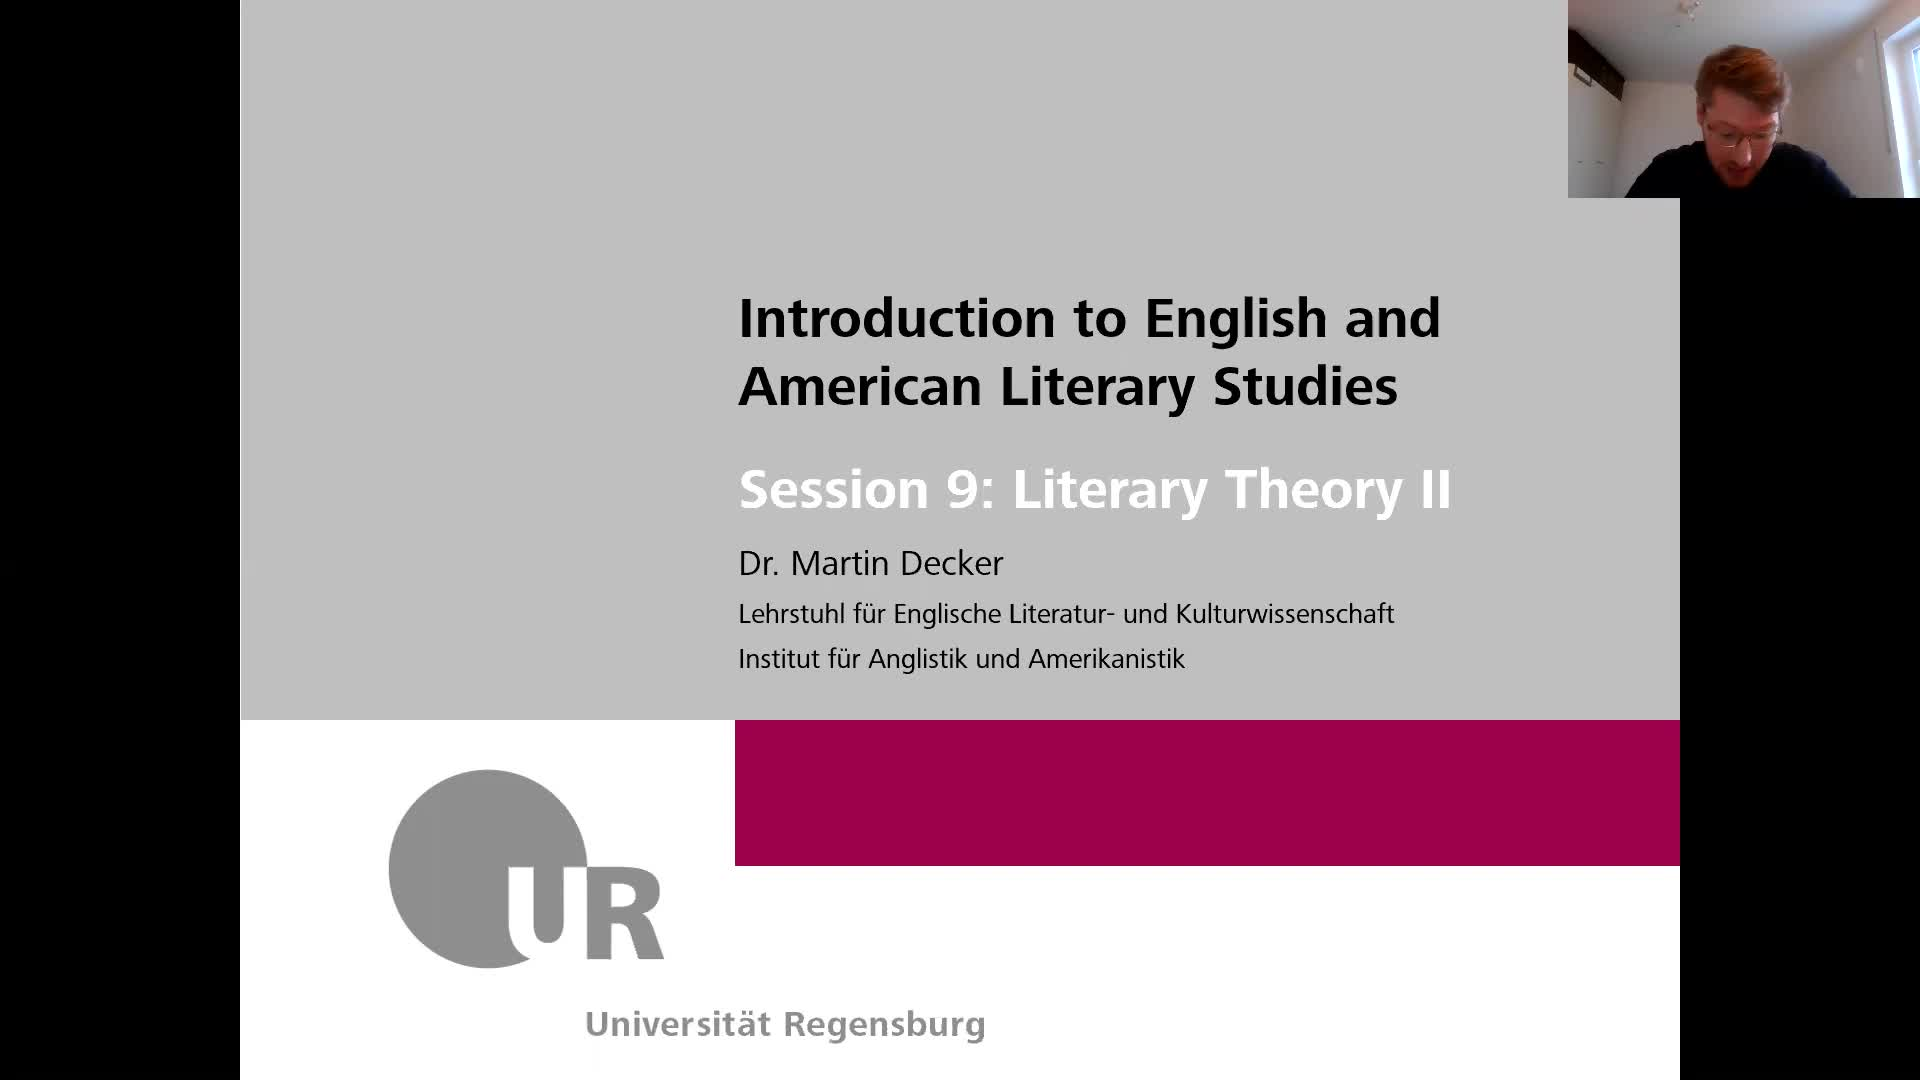 Introduction to English and American Literary Studies - LECTURE - Session 10